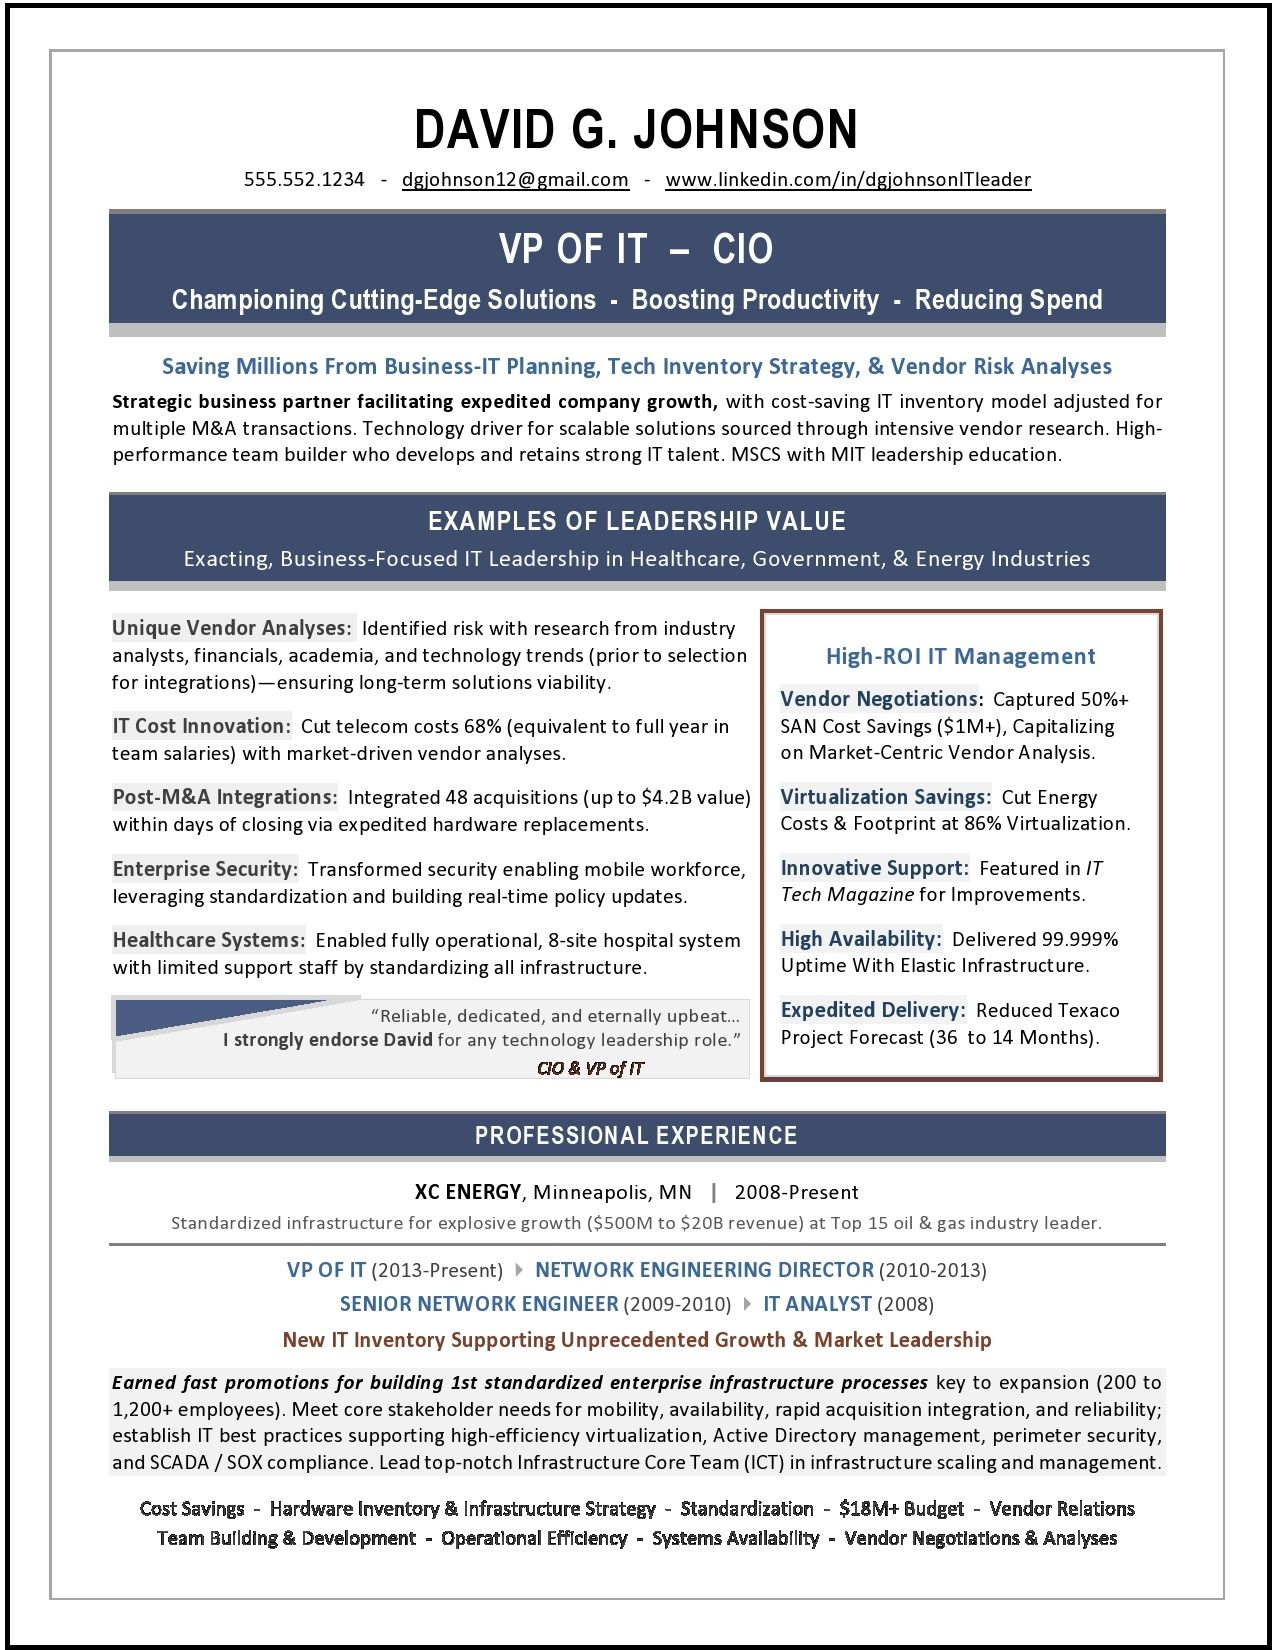 Sample Vp Of It Resume Award Winning Resume Writer For It And Engineering Resumes Executive Resume Resume Writing Resume Writing Services